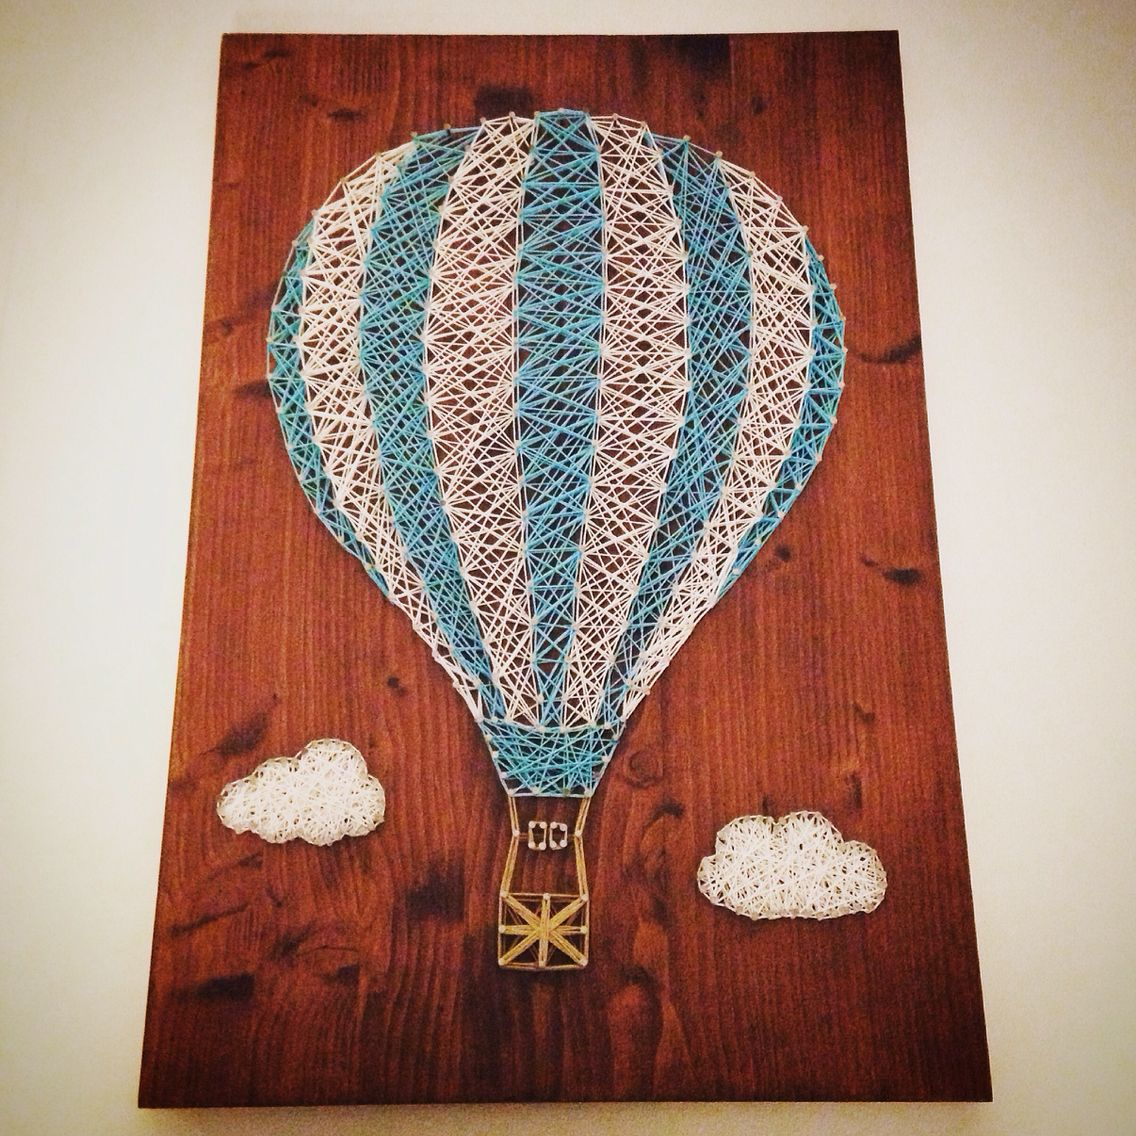 Uncategorized String Art Balloons string art pinterest explore hot air balloons and more